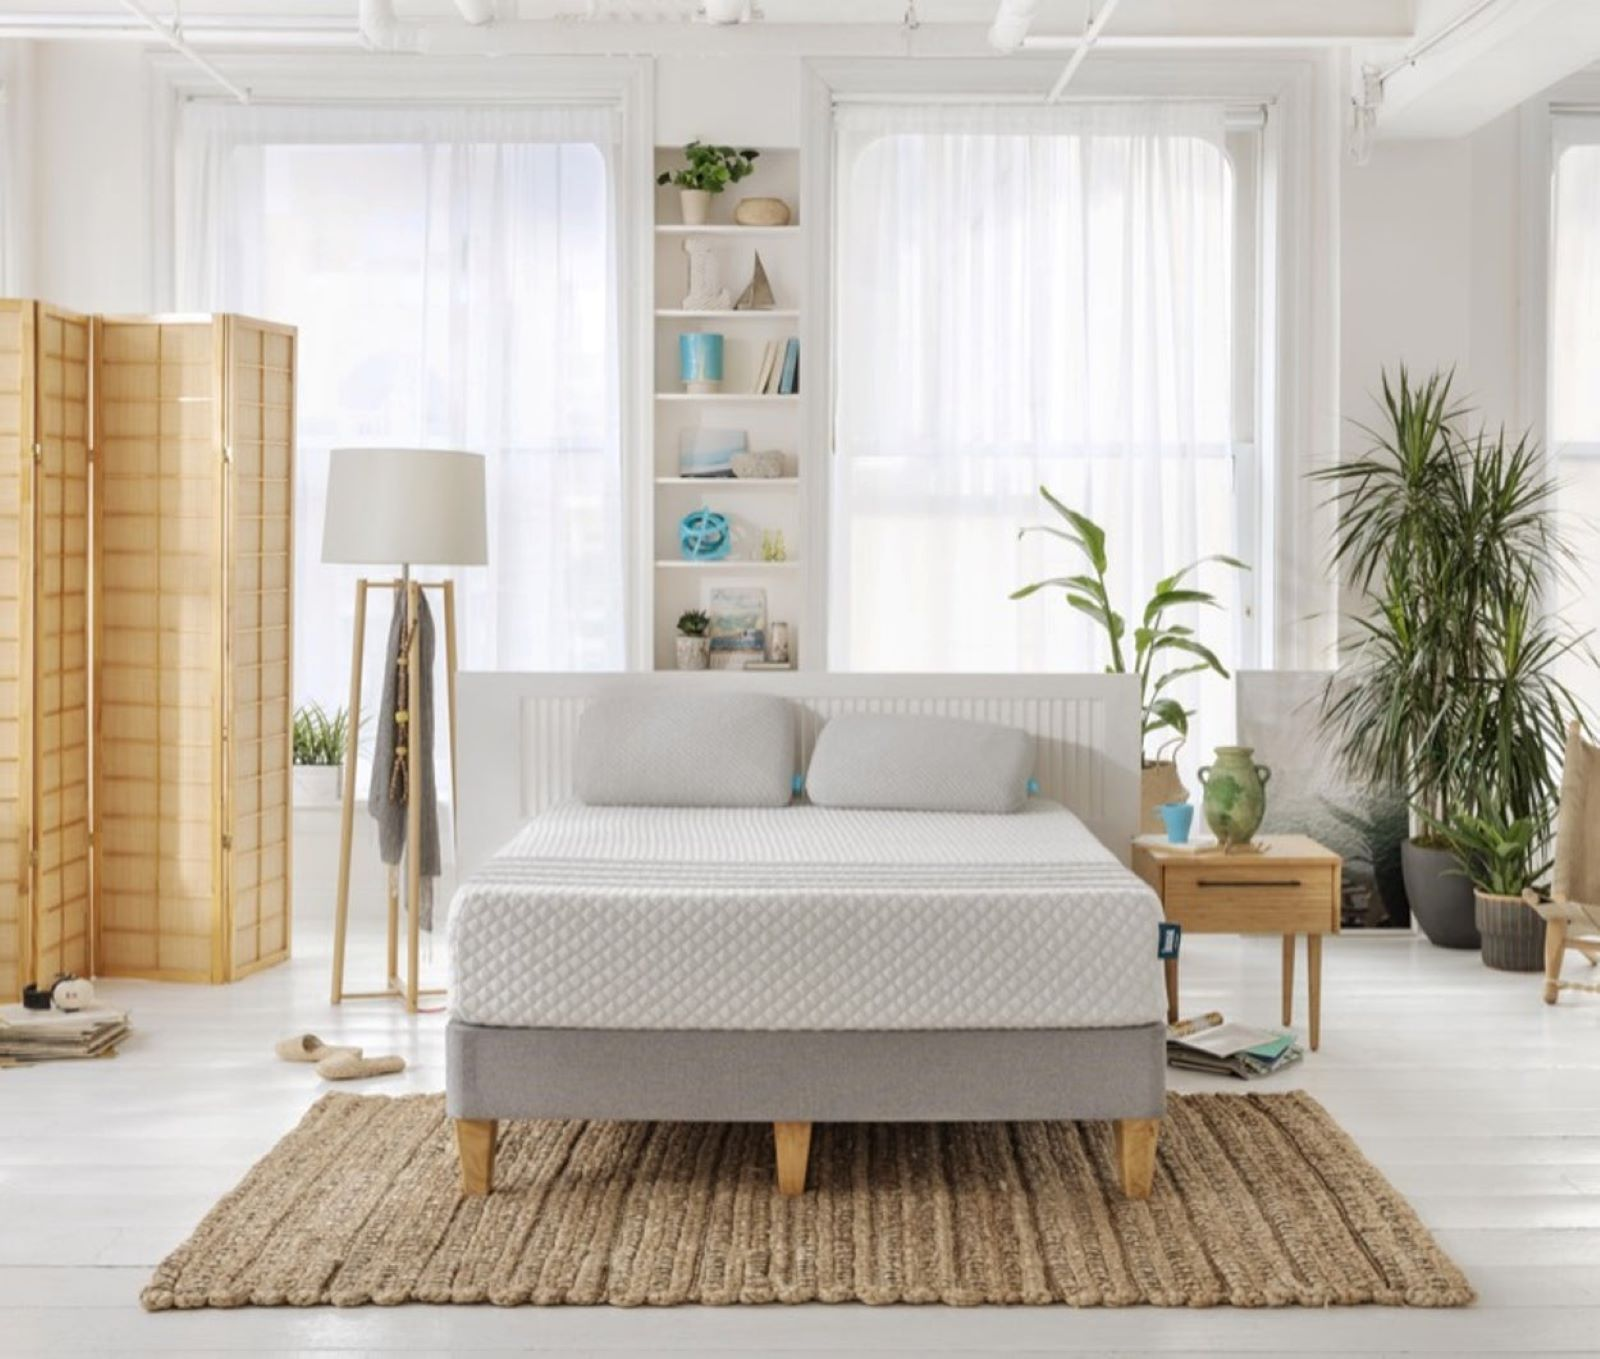 LESSA hybrid mattress in bedroom with white floors, walls and curtains. the bed is sitting on a brown rug